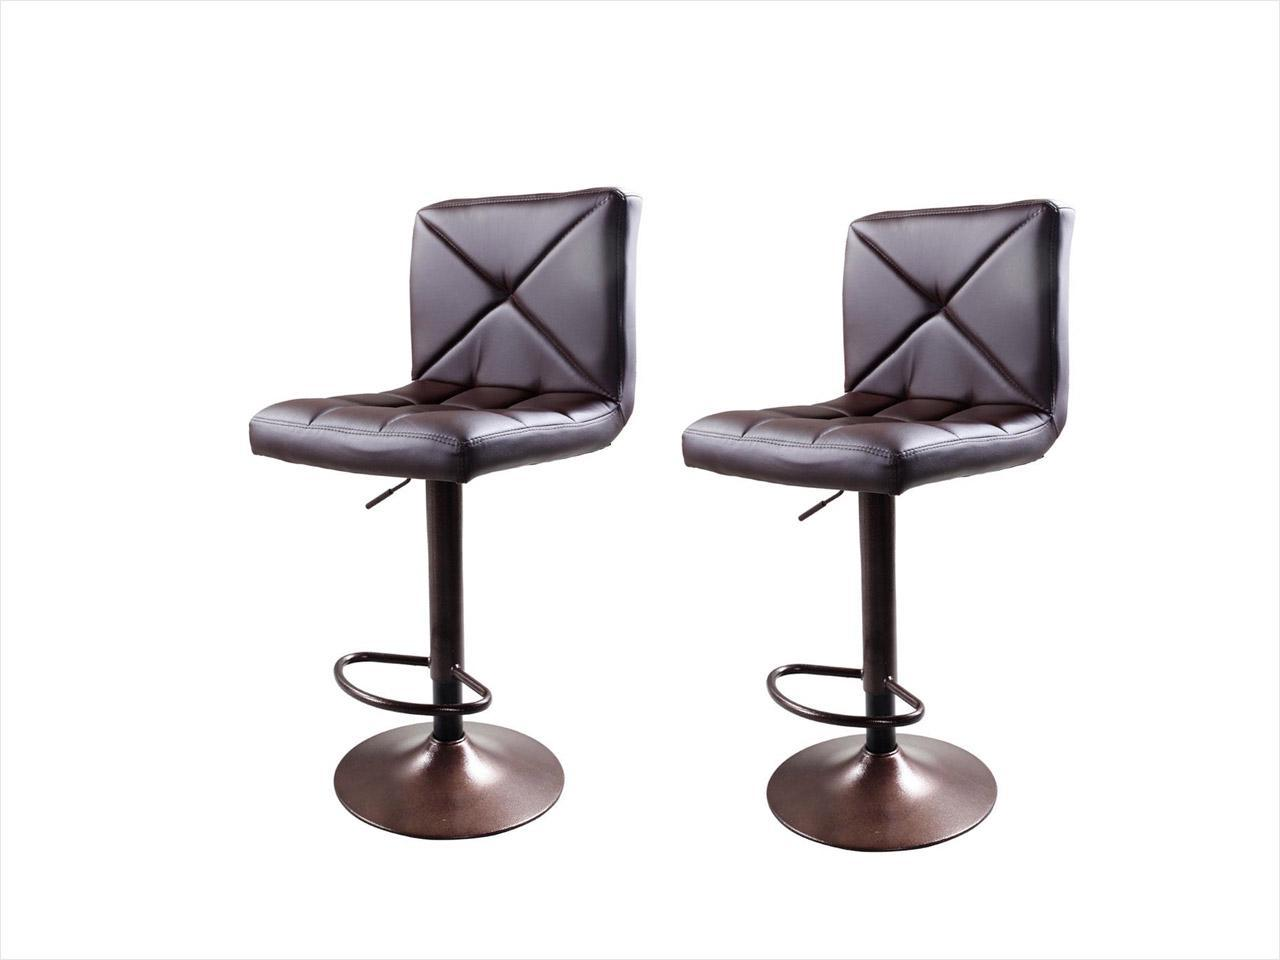 hydraulic chair for sale bedroom sofa new 2 pack adjustable modern pu leather swivel